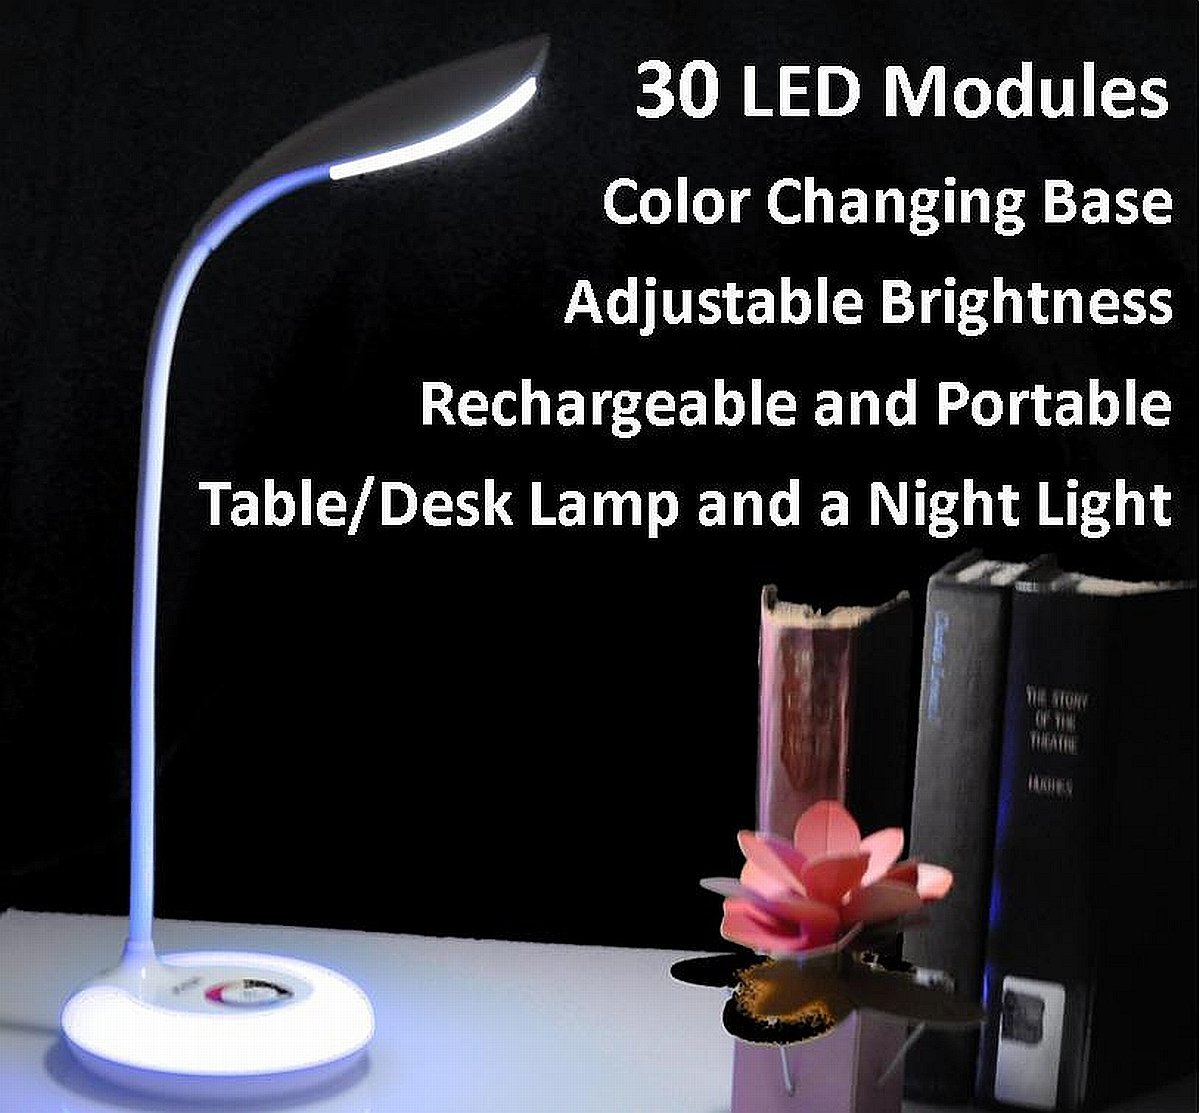 Portable Rechargeable Adjustable Brightness LED Table/Desk Lamp with Color Changing Base, White